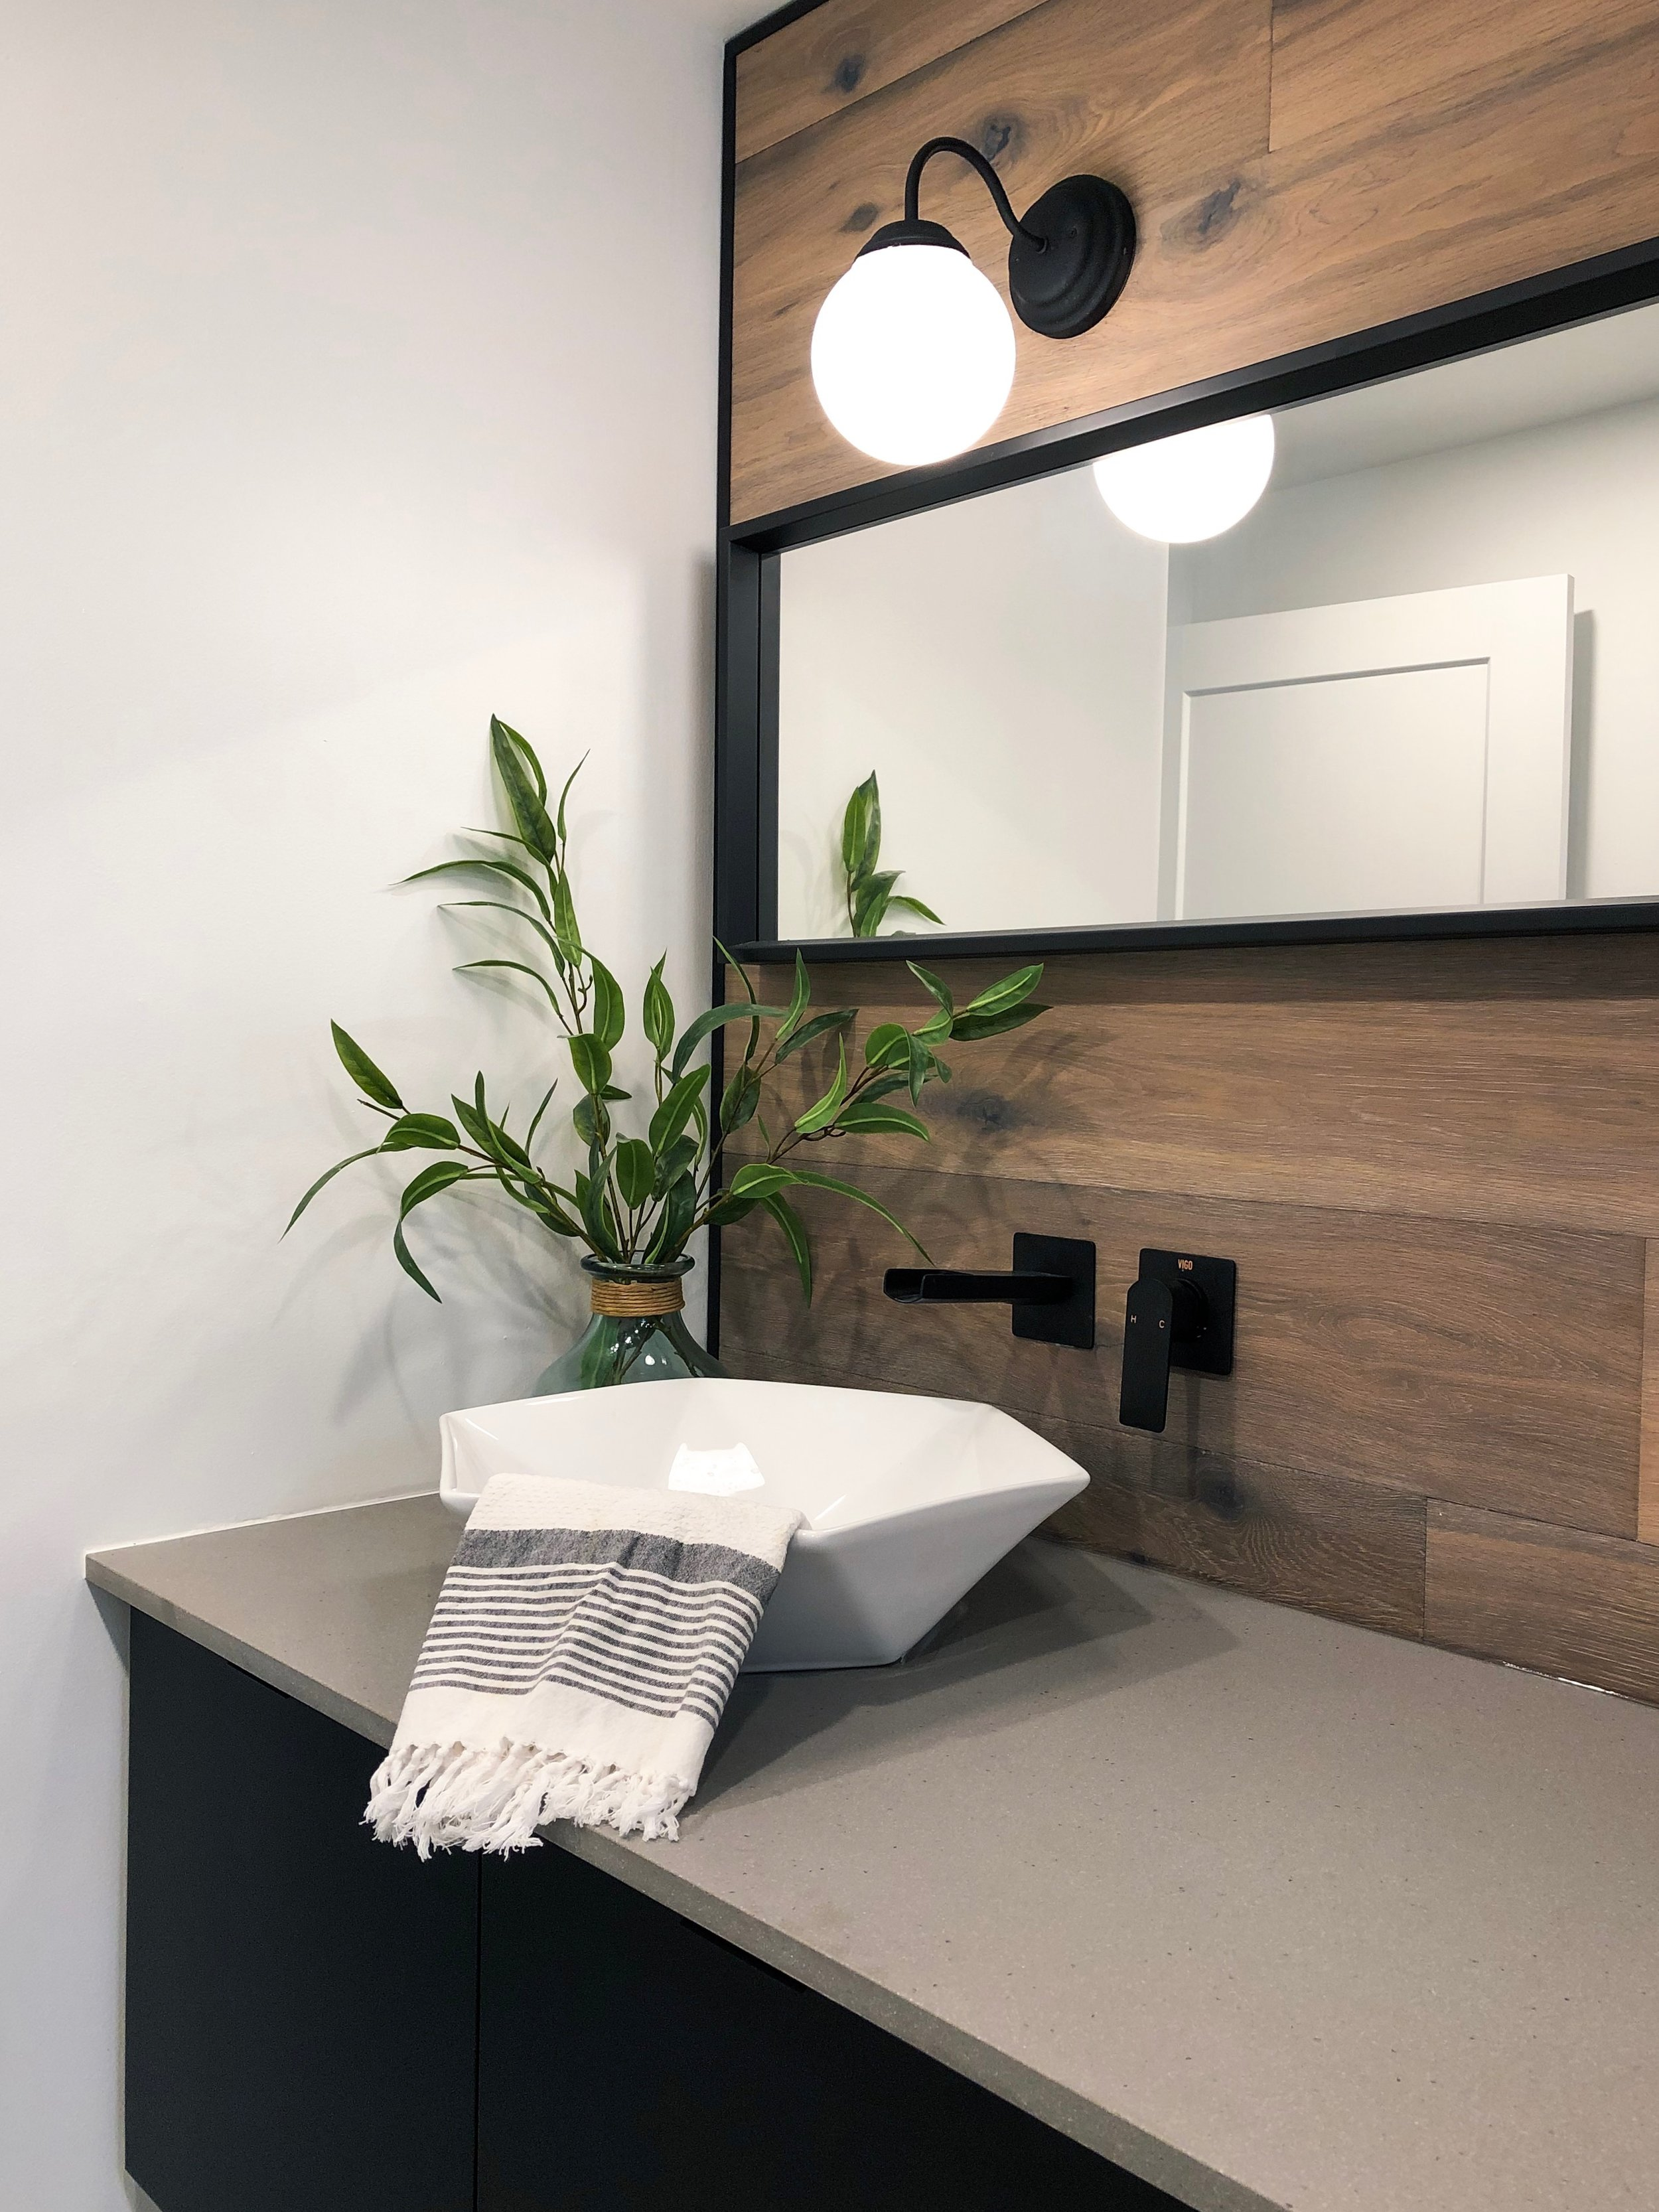 5 Life-Changing Interior Design Ideas For Small Spaces | VIGO Industries - Kitchen and Bathroom Design Ideas - Modern Sinks and Faucets